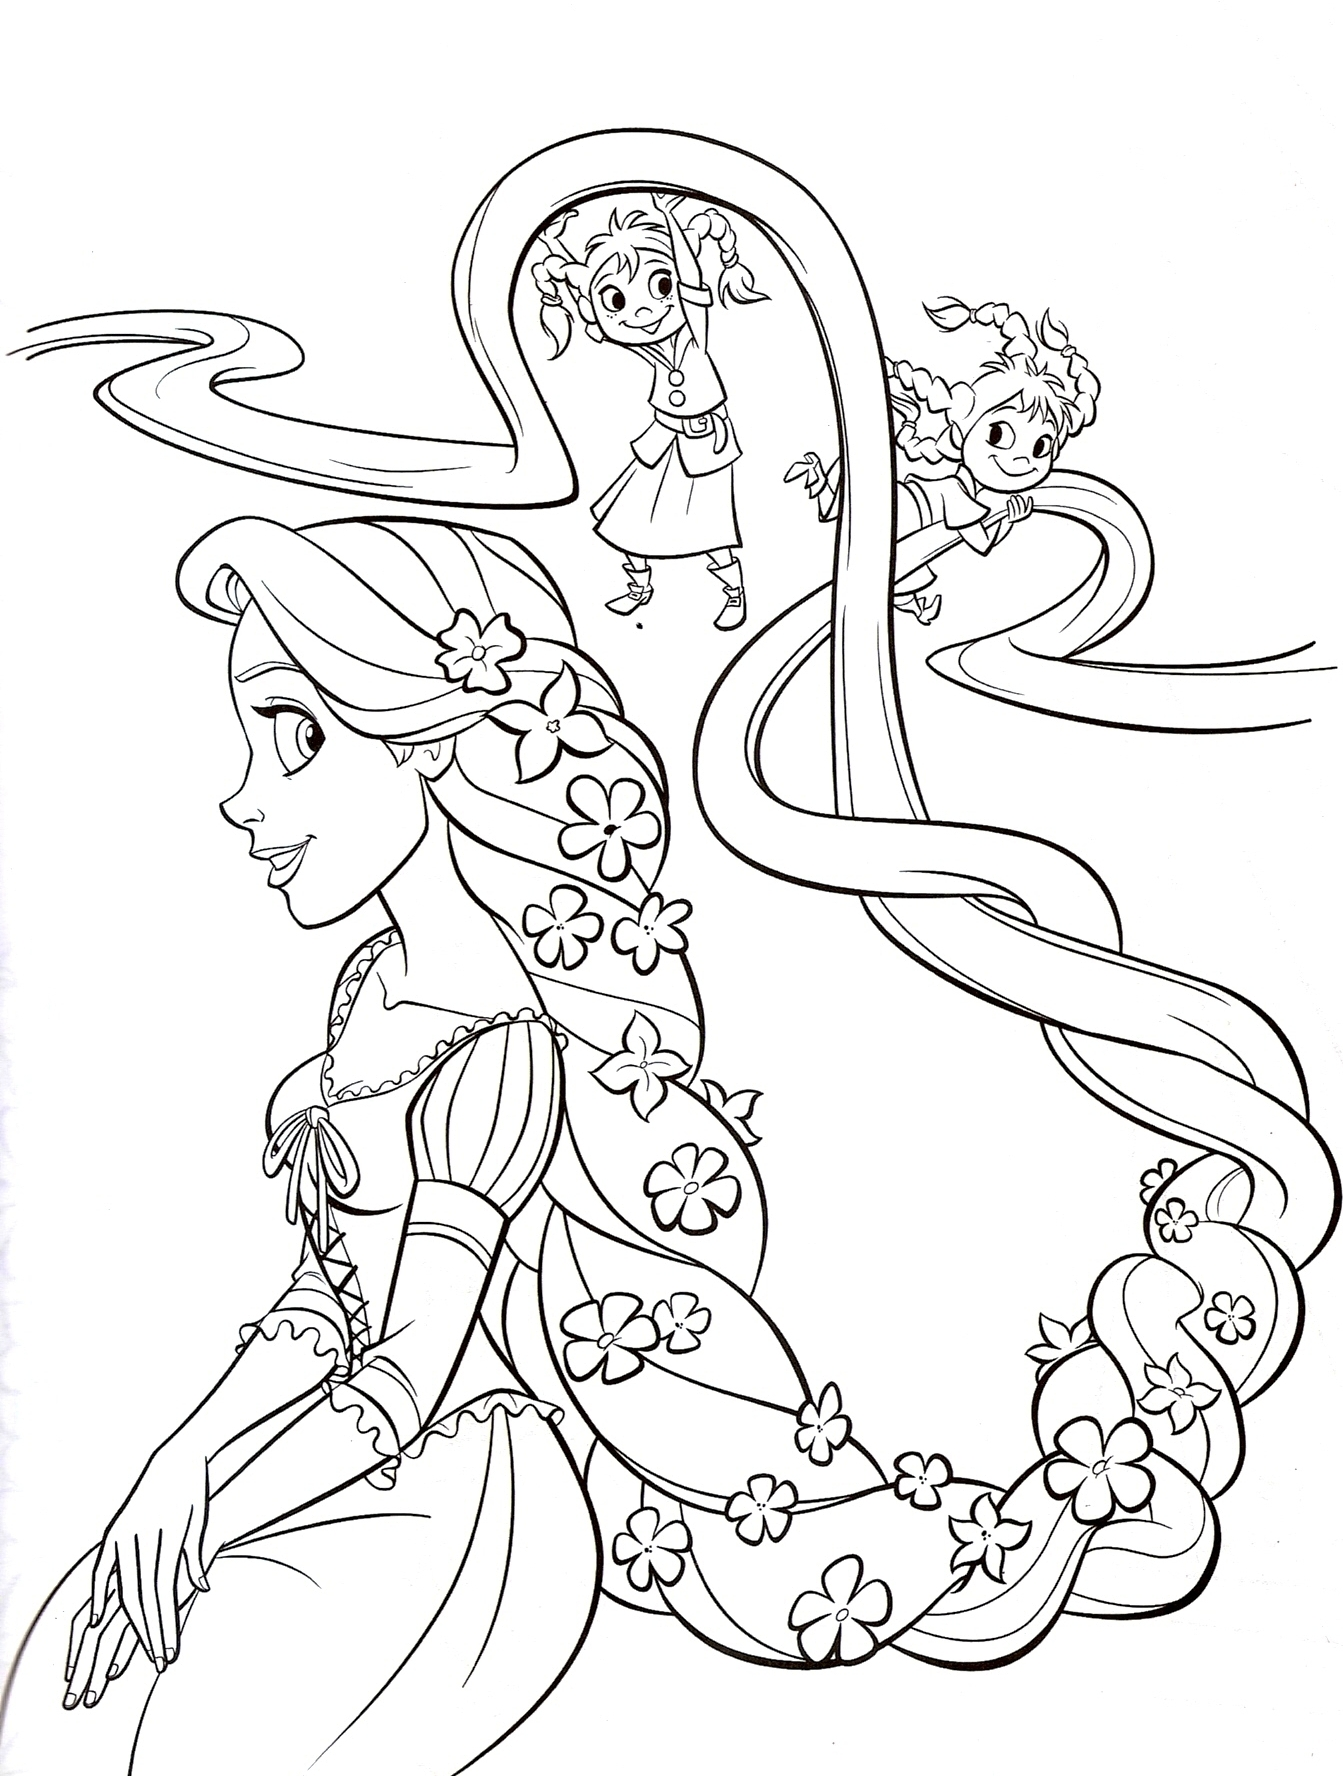 printable coloring pages rapunzel - photo#41